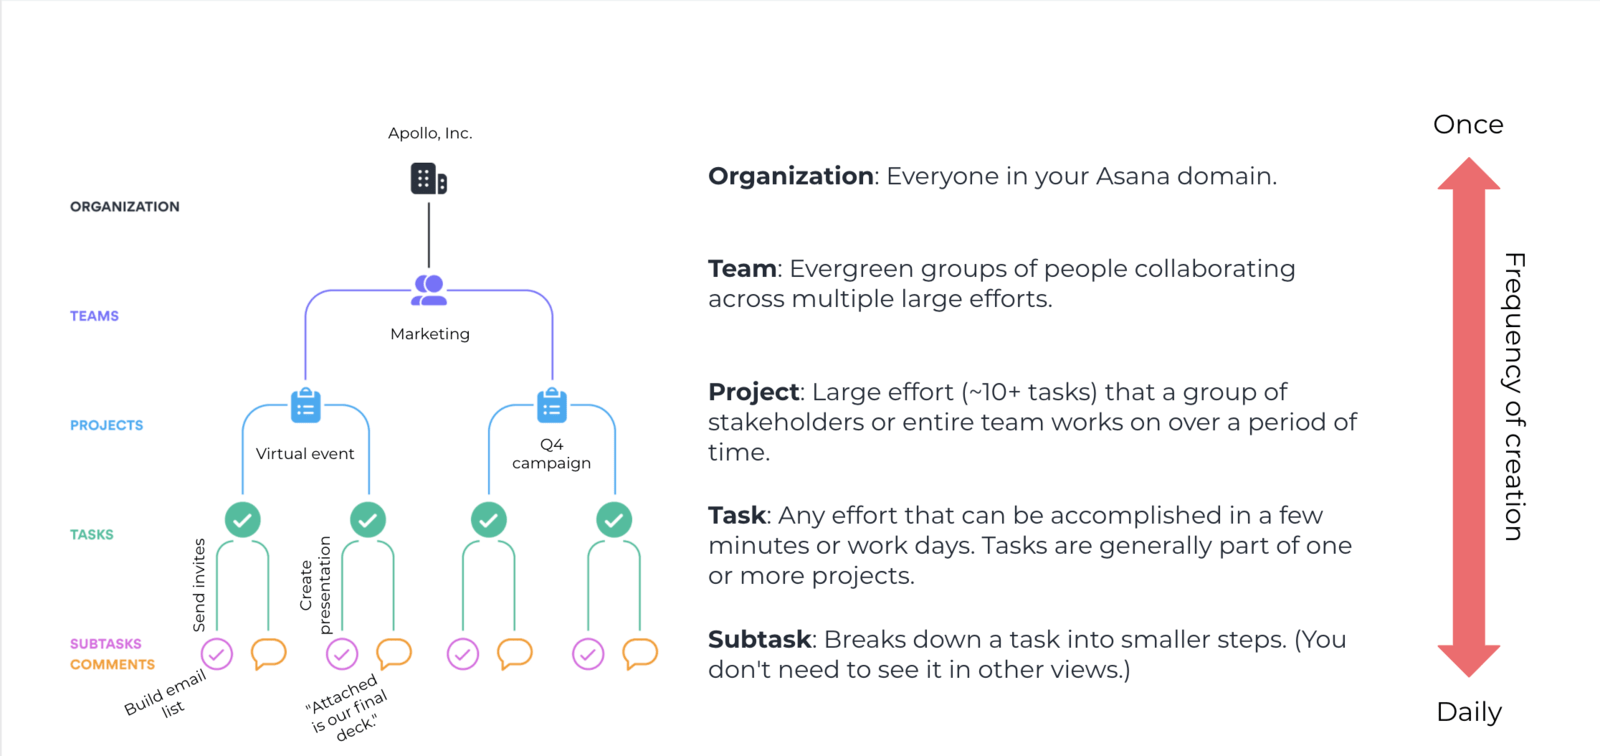 IMAGE of Asana hierarchy from organization to team to project to task to subtask with examples of each